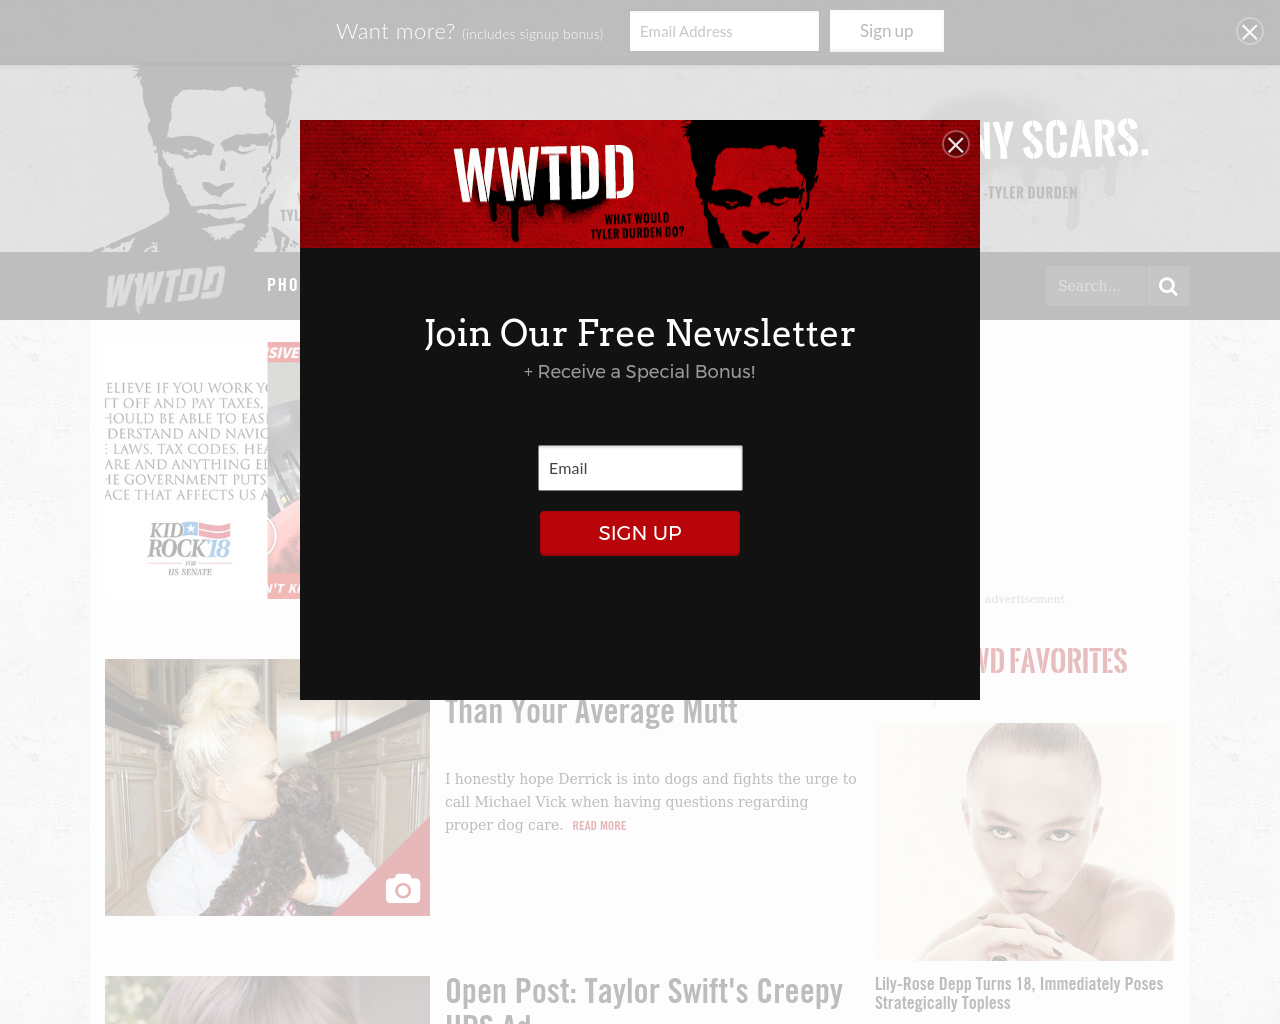 WWTDD.com-Advertising-Reviews-Pricing